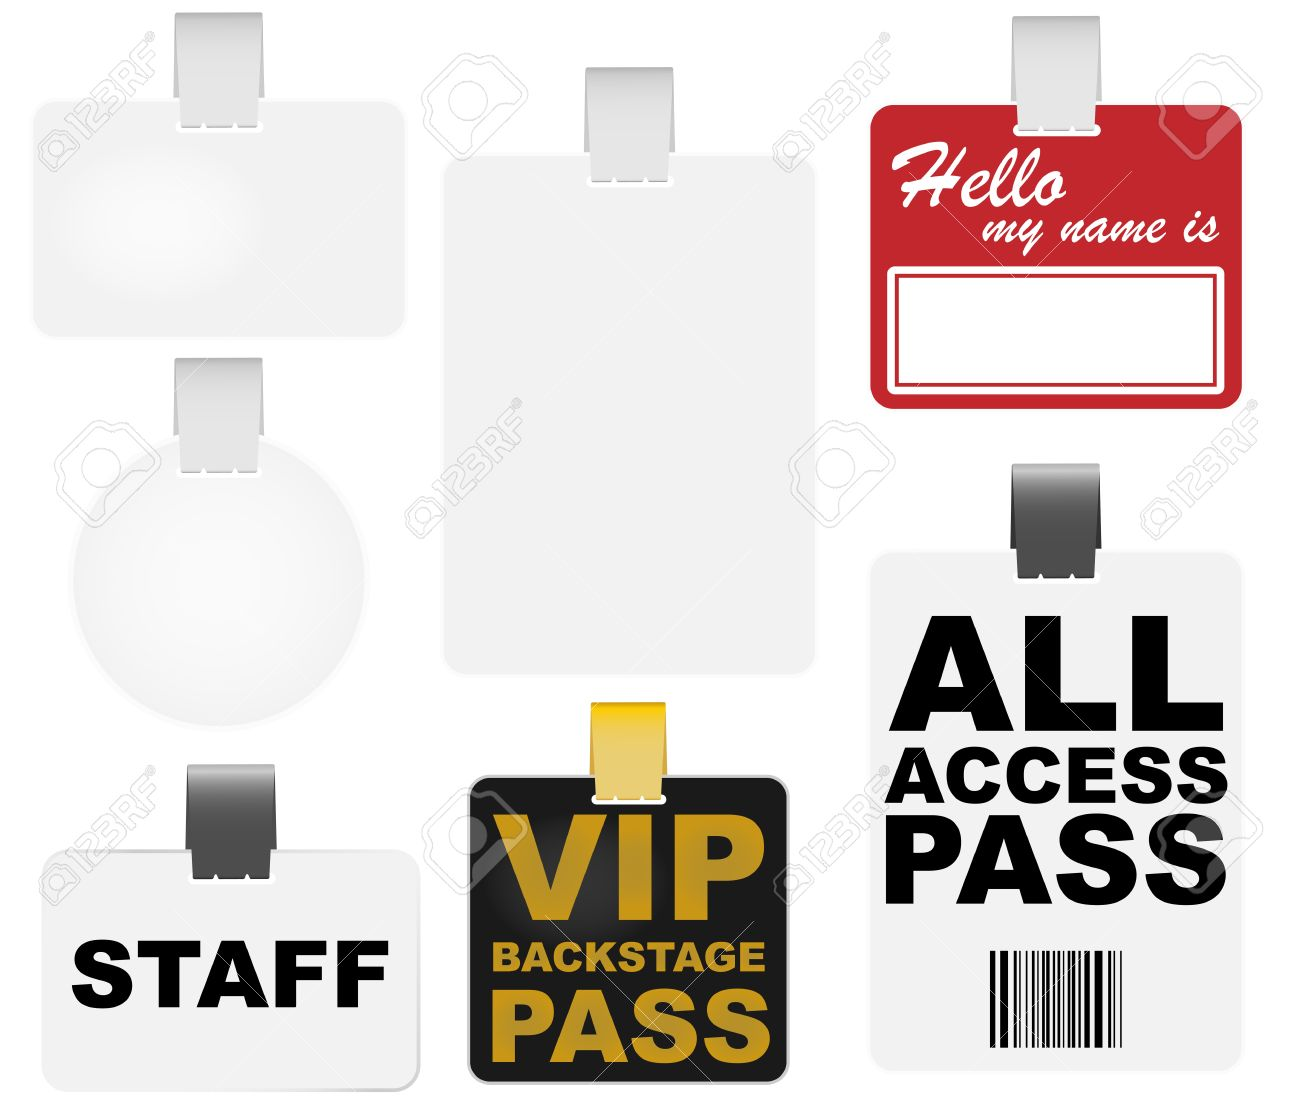 Vip Access Pass Vip Pass Collection of